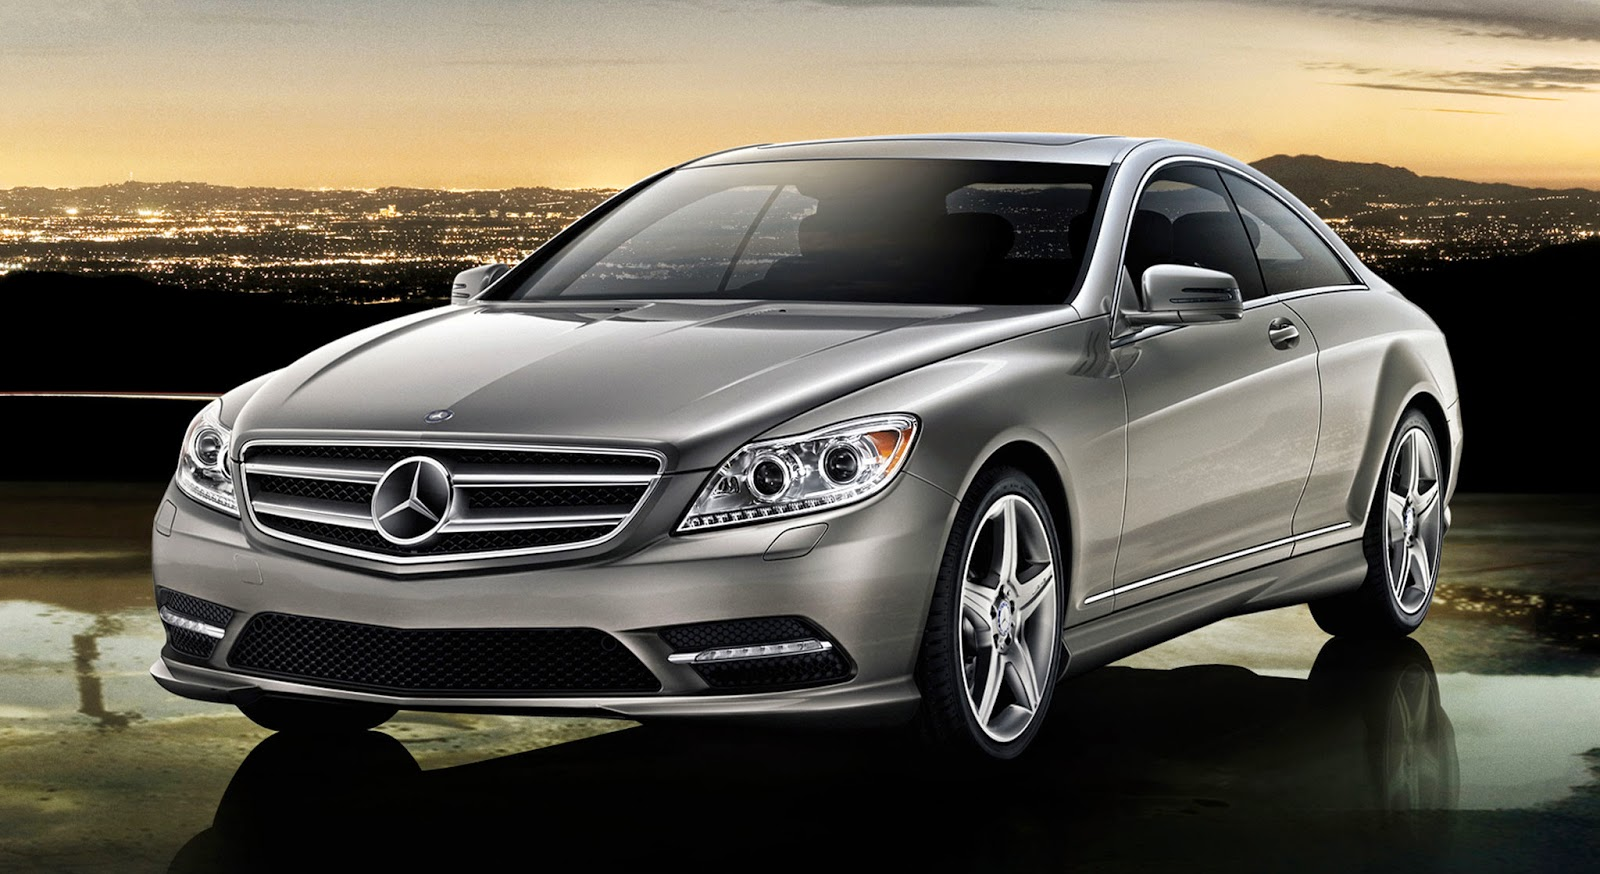 11 World S Most Expensive Cars For 2014 Knowledge Place